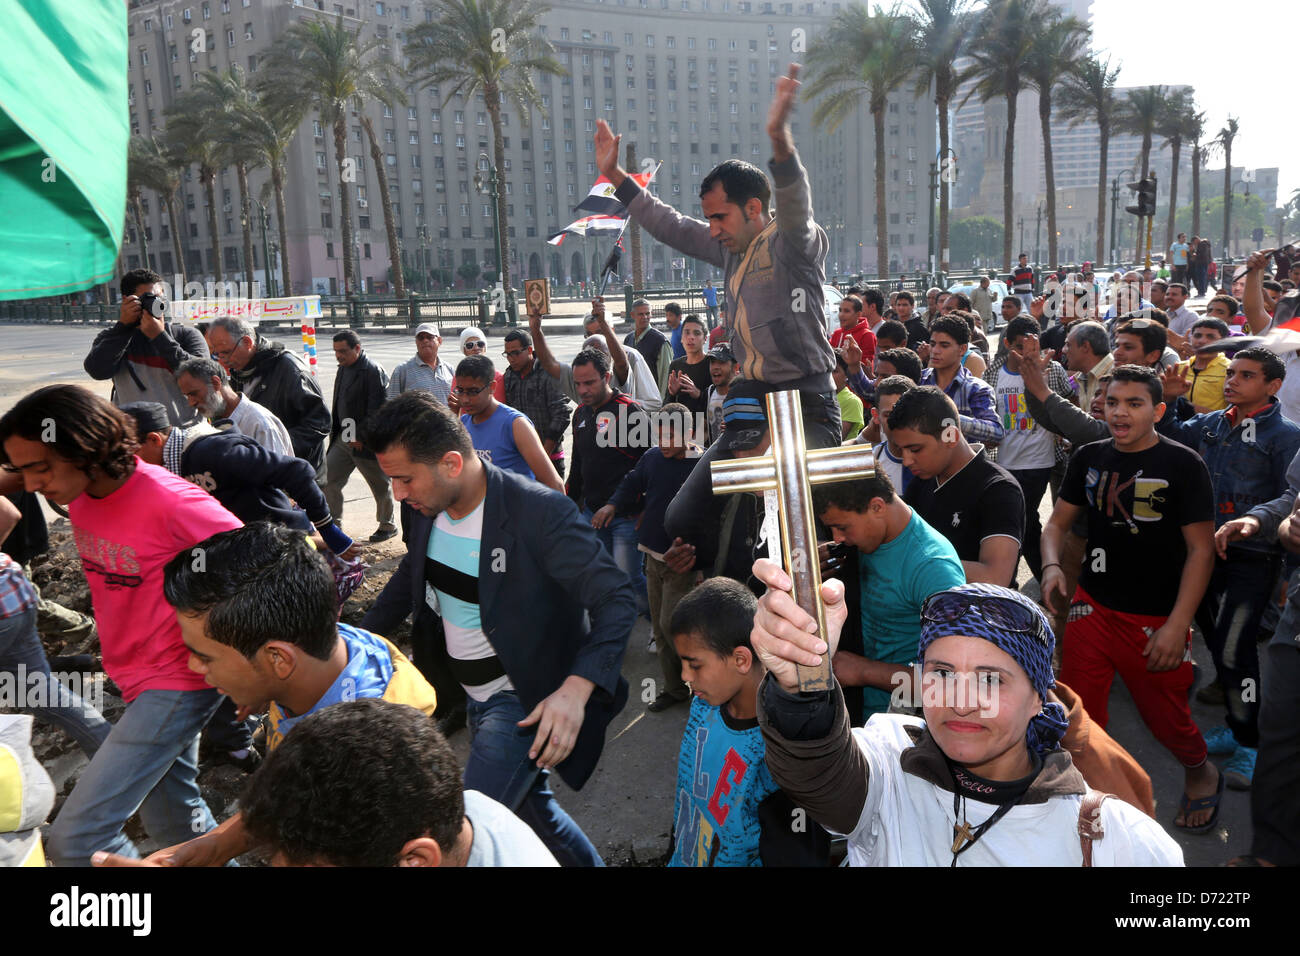 A christian woman holds a wooden cross during a peaceful christian-muslim mass rally in Tahrir Square, Cairo, Egypt - Stock Image